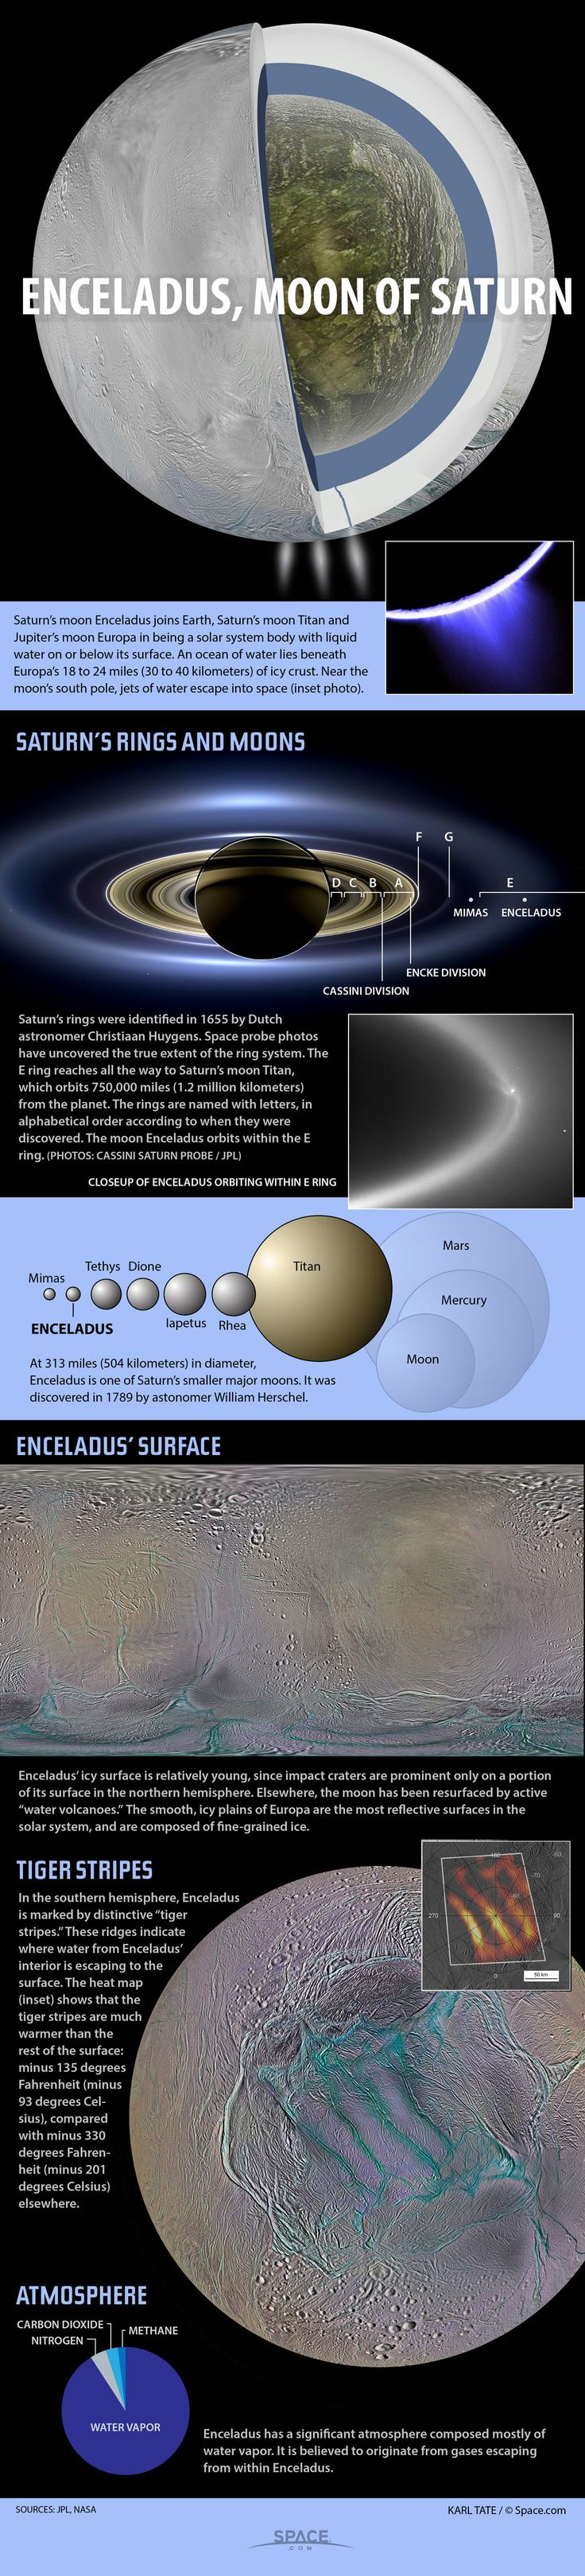 Scientists are mulling a variety of ways to hunt for life on Saturn's icy…